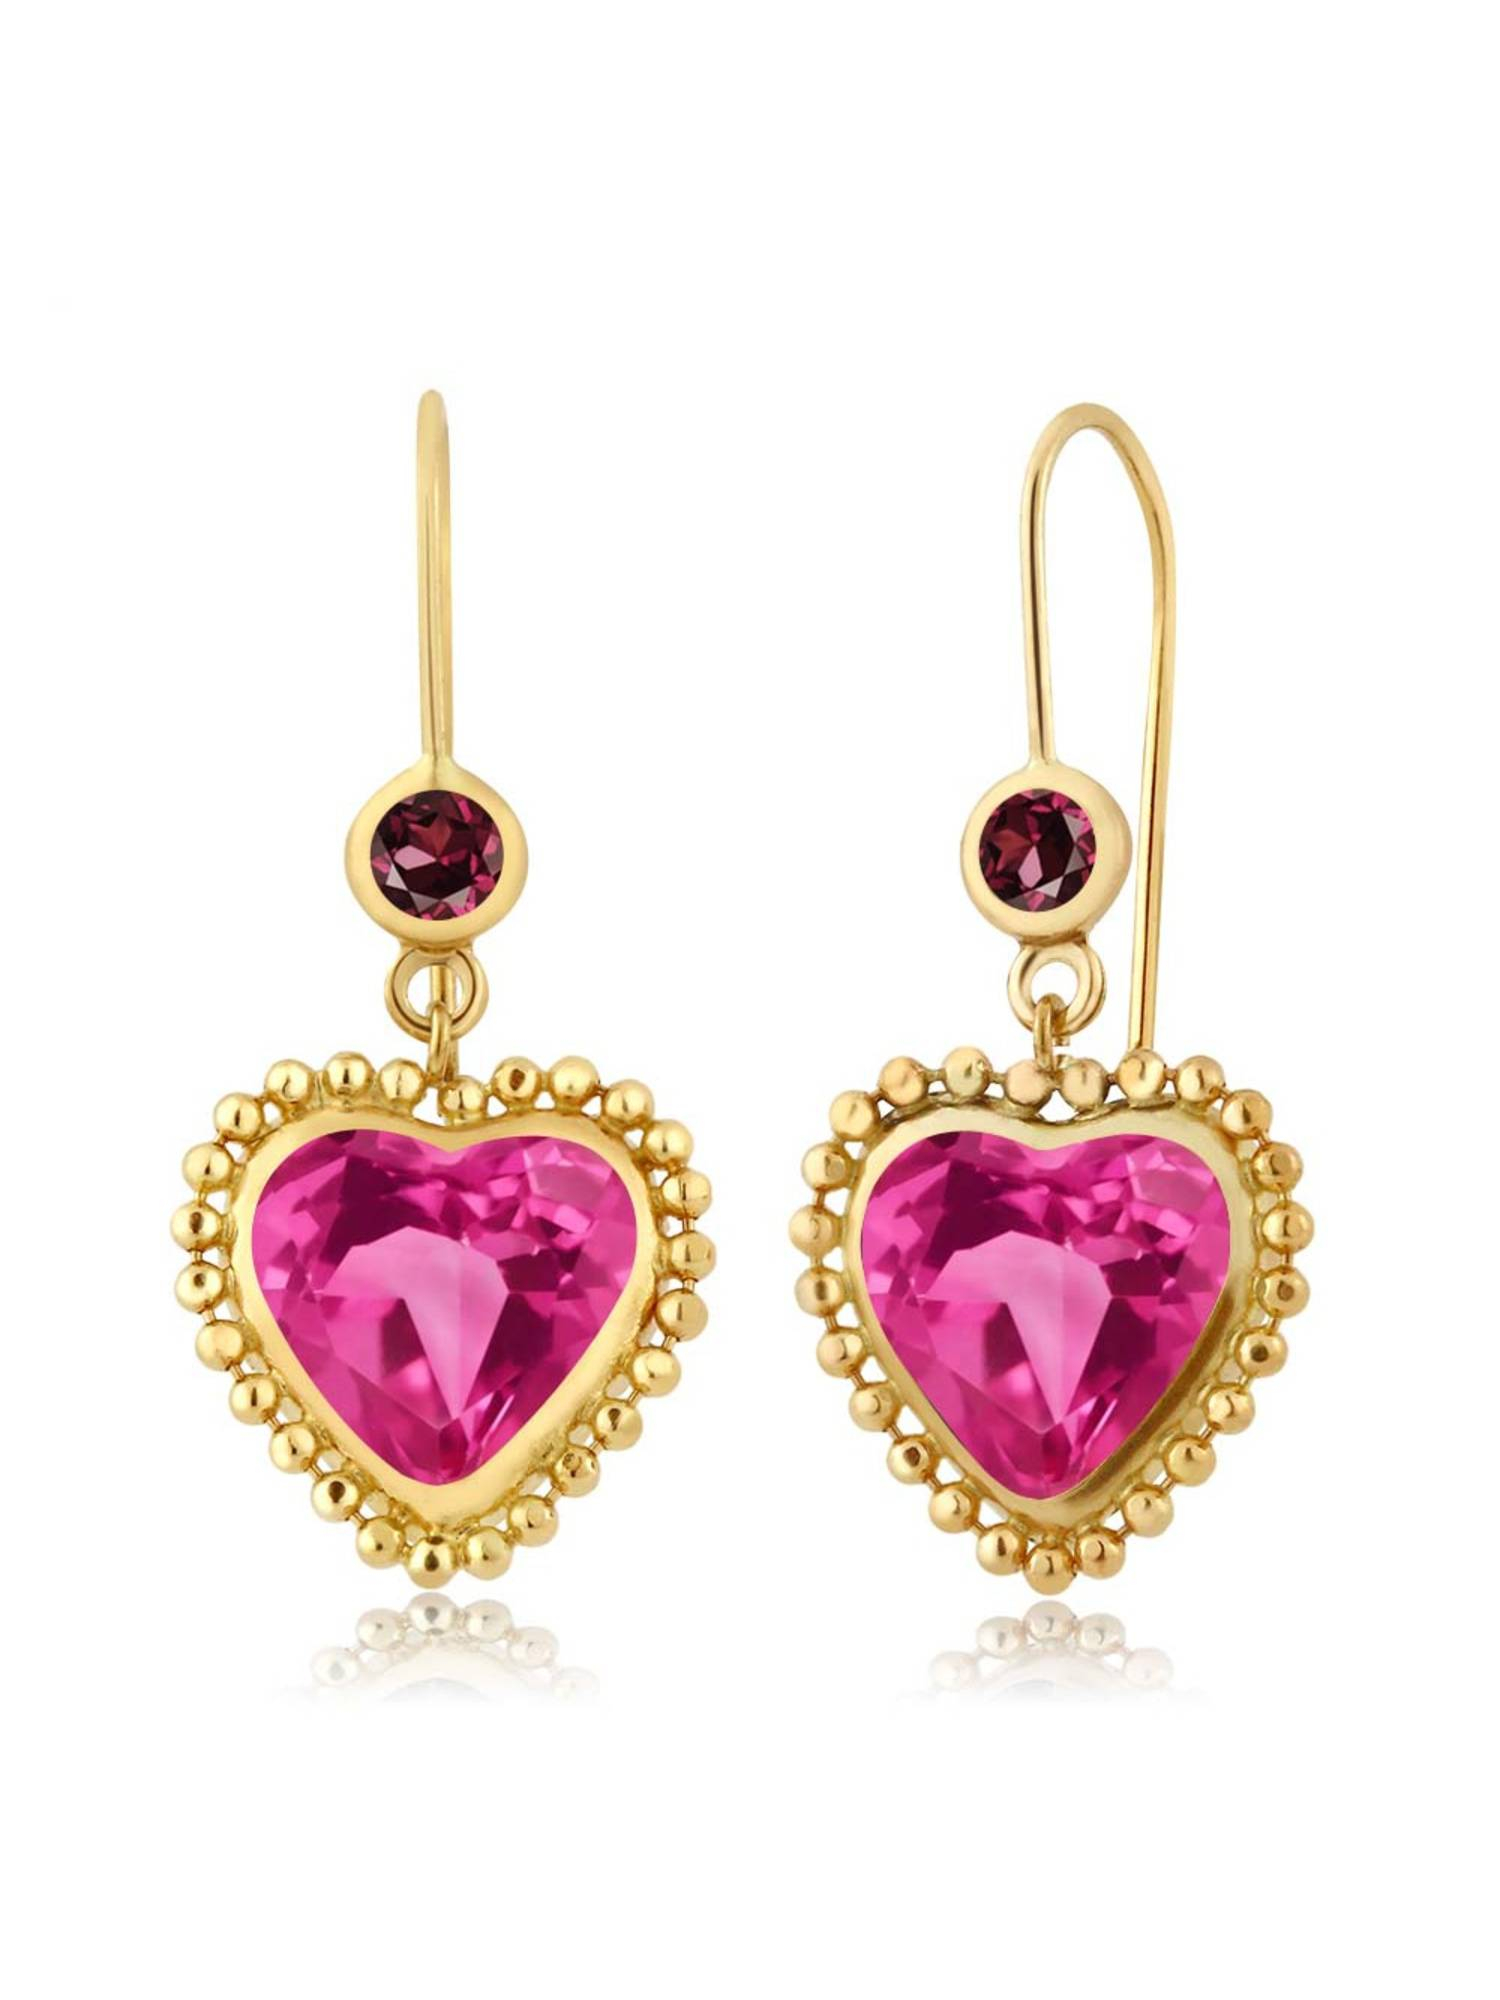 4.64 Ct Pink Mystic Topaz Red Rhodolite Garnet 14K Yellow Gold Earrings by